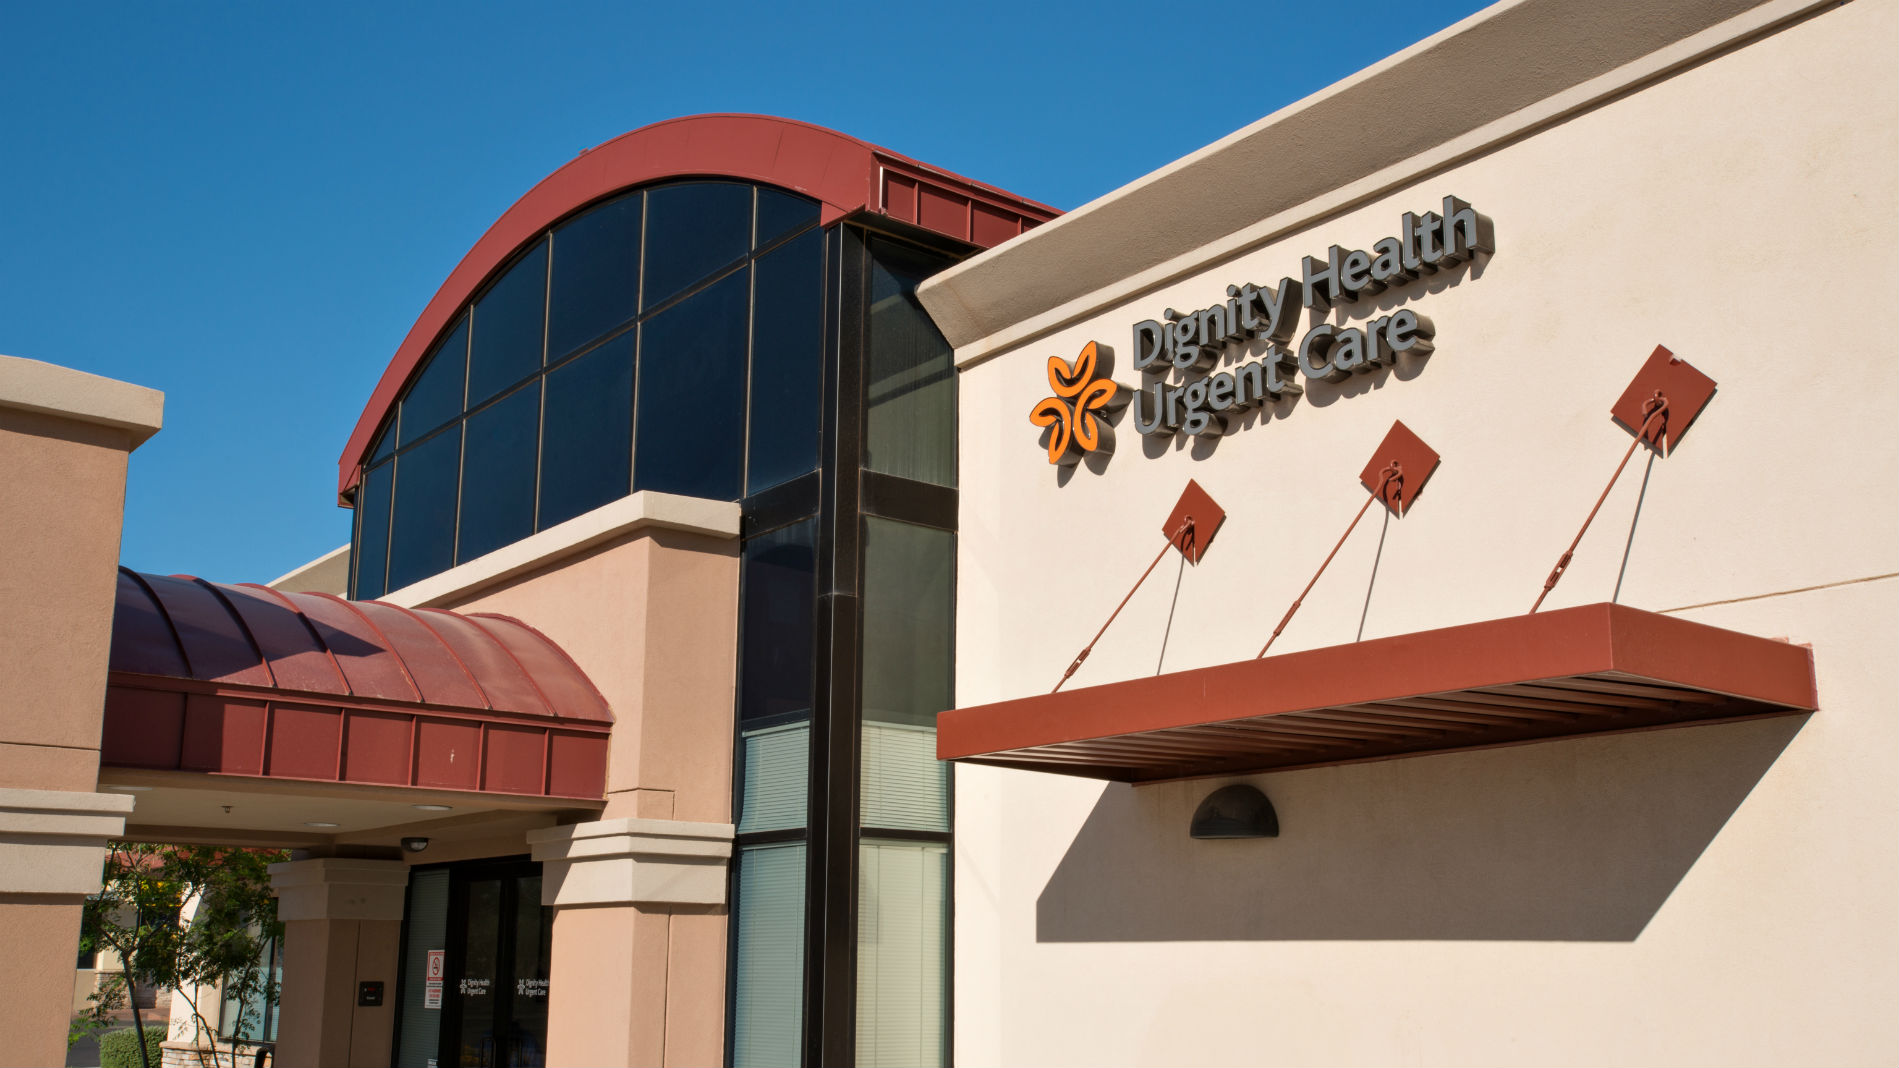 Dignity Health Urgent Care in Maricopa